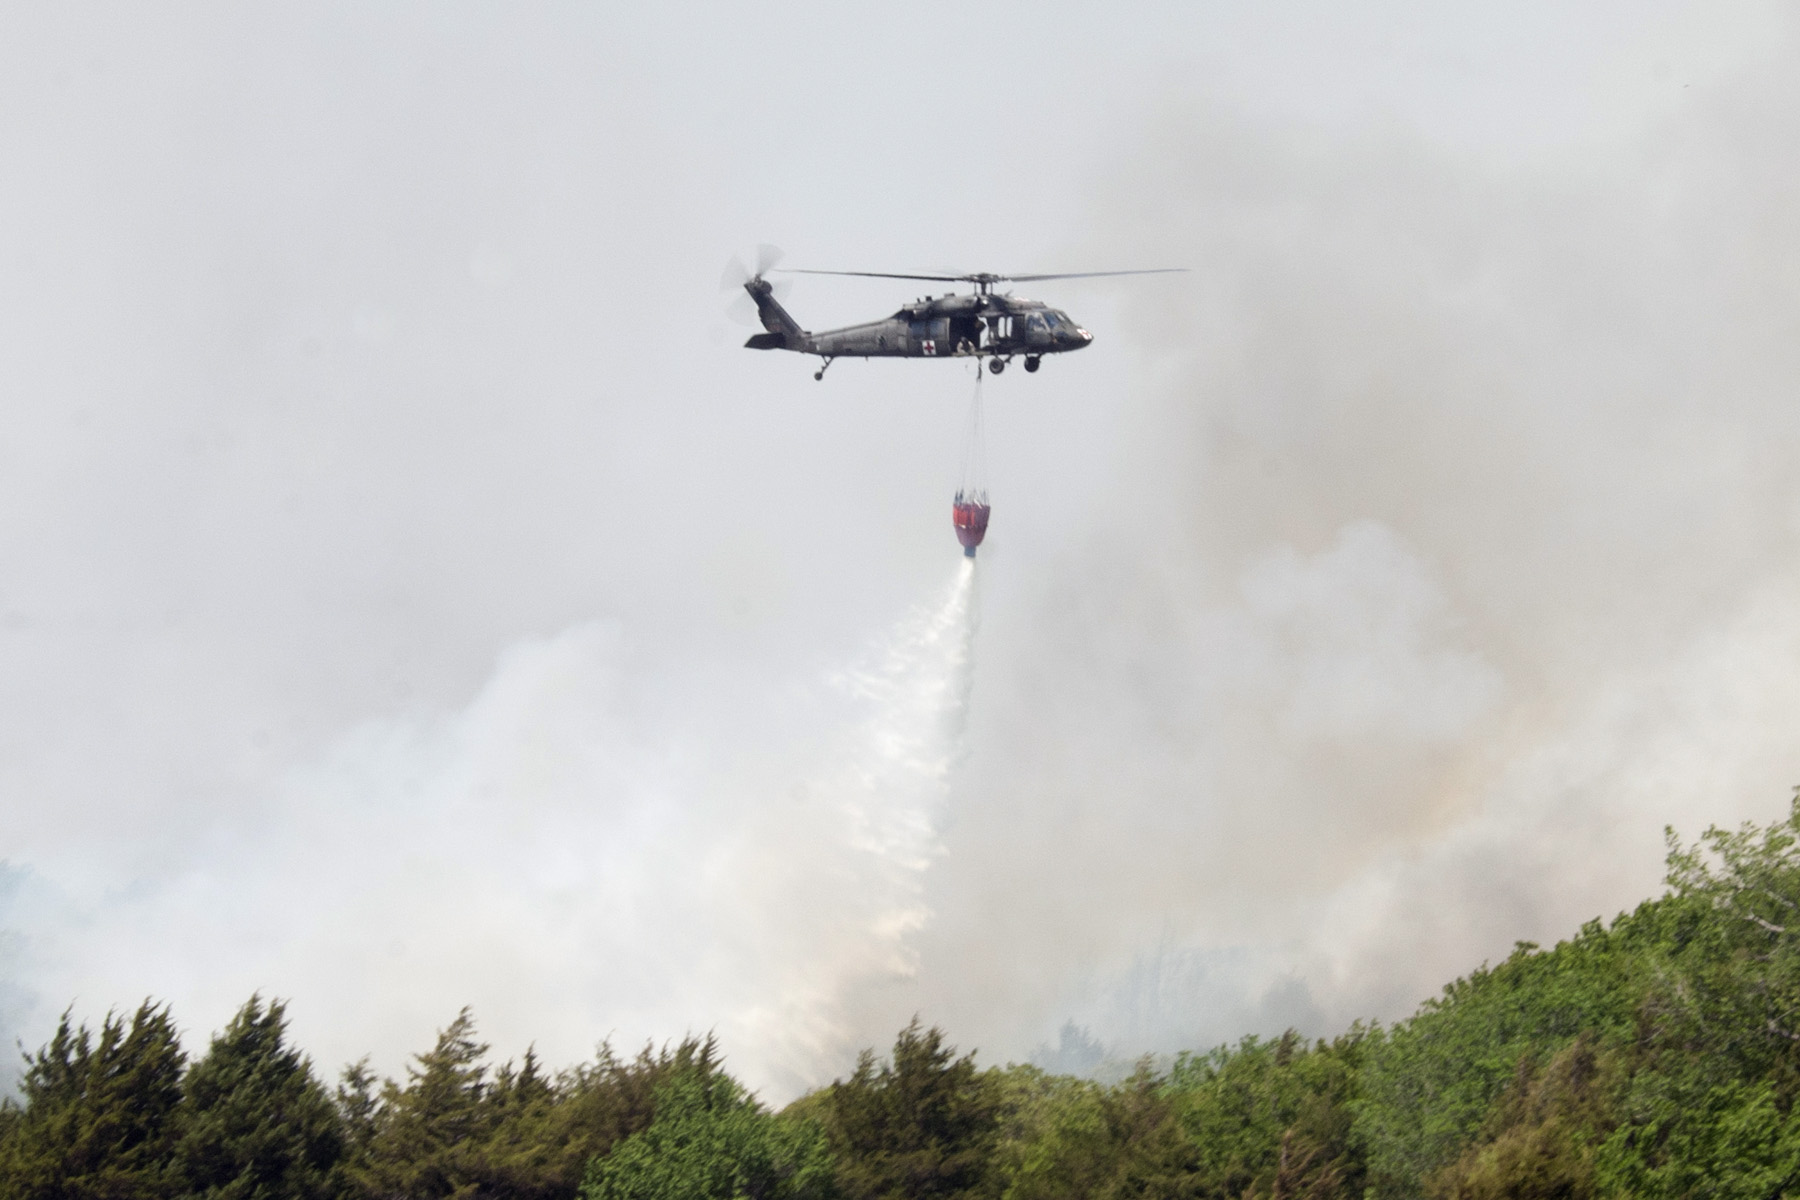 """A UH-60 """"Blackhawk"""" helicopter from the Oklahoma Army National Guard assists local fire fighters near Guthrie, Oklahoma, as they attempt to contain wildfires that claimed more the 6,000 acres of land and numerous homes in less than 24 hours."""